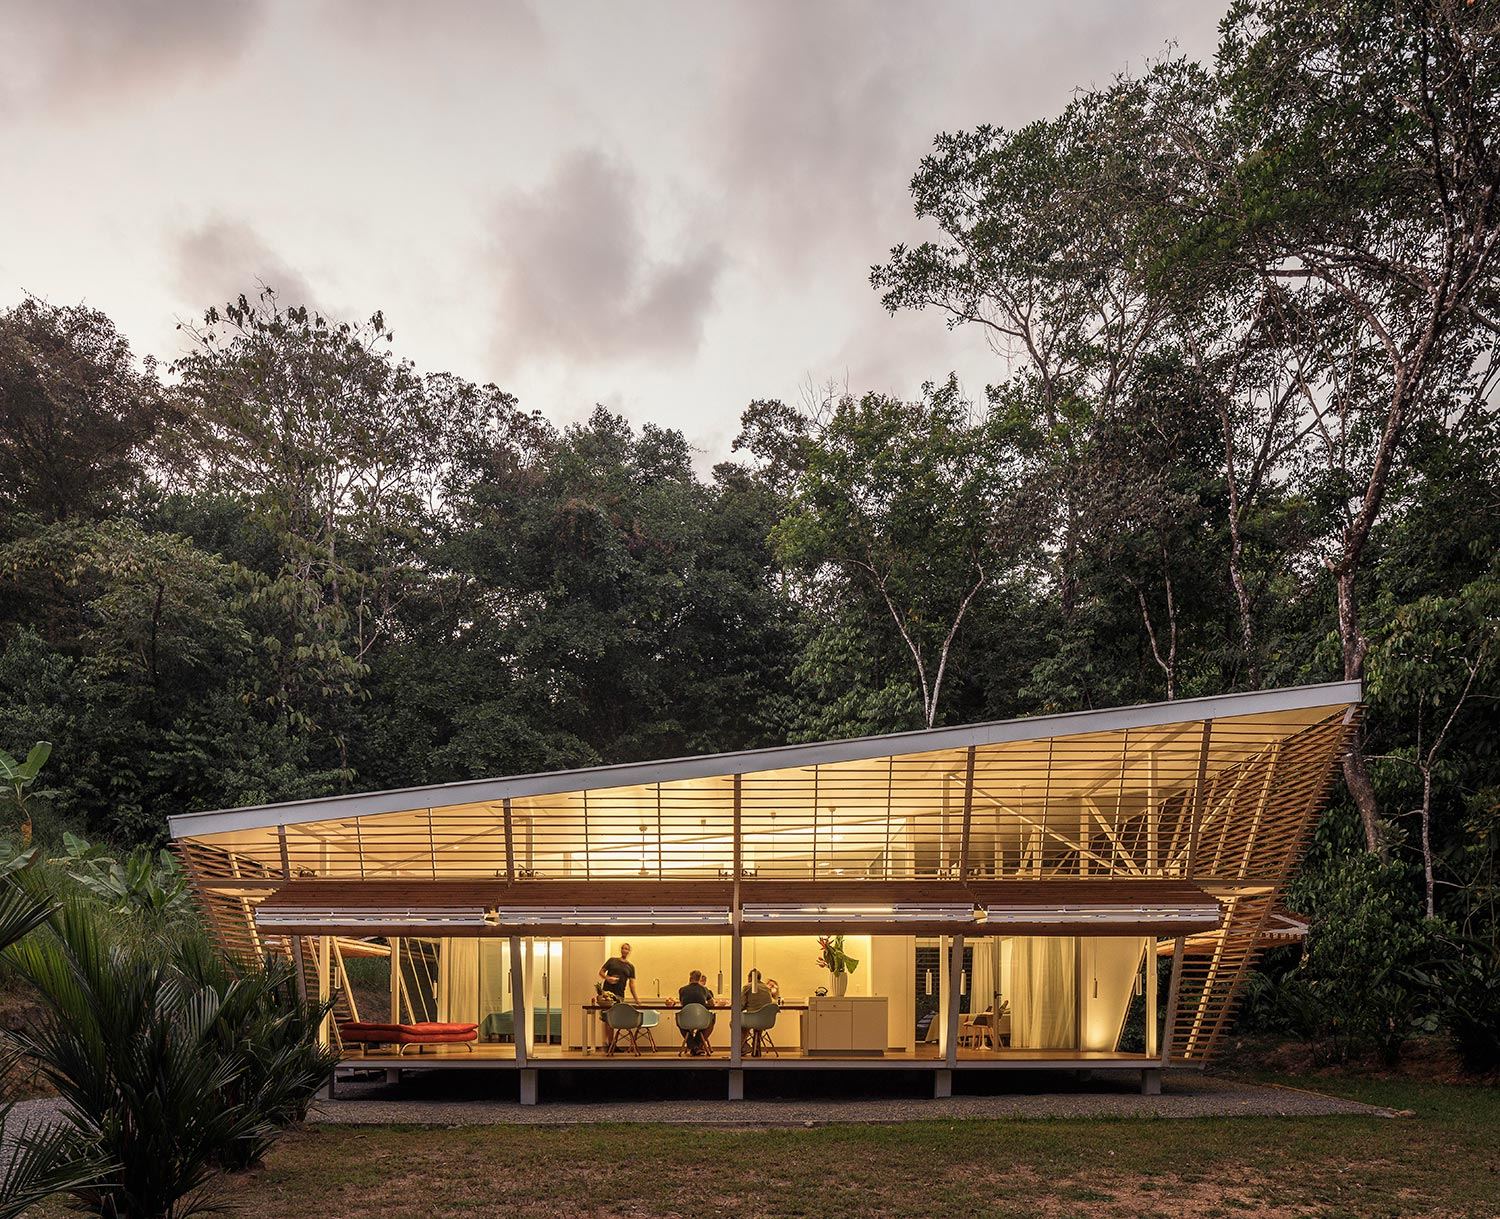 The larger catalog of building typologies includes fully independent configurations in terms of self-sufficiency and energy-autarky for off-grid locations. Fernando Alda